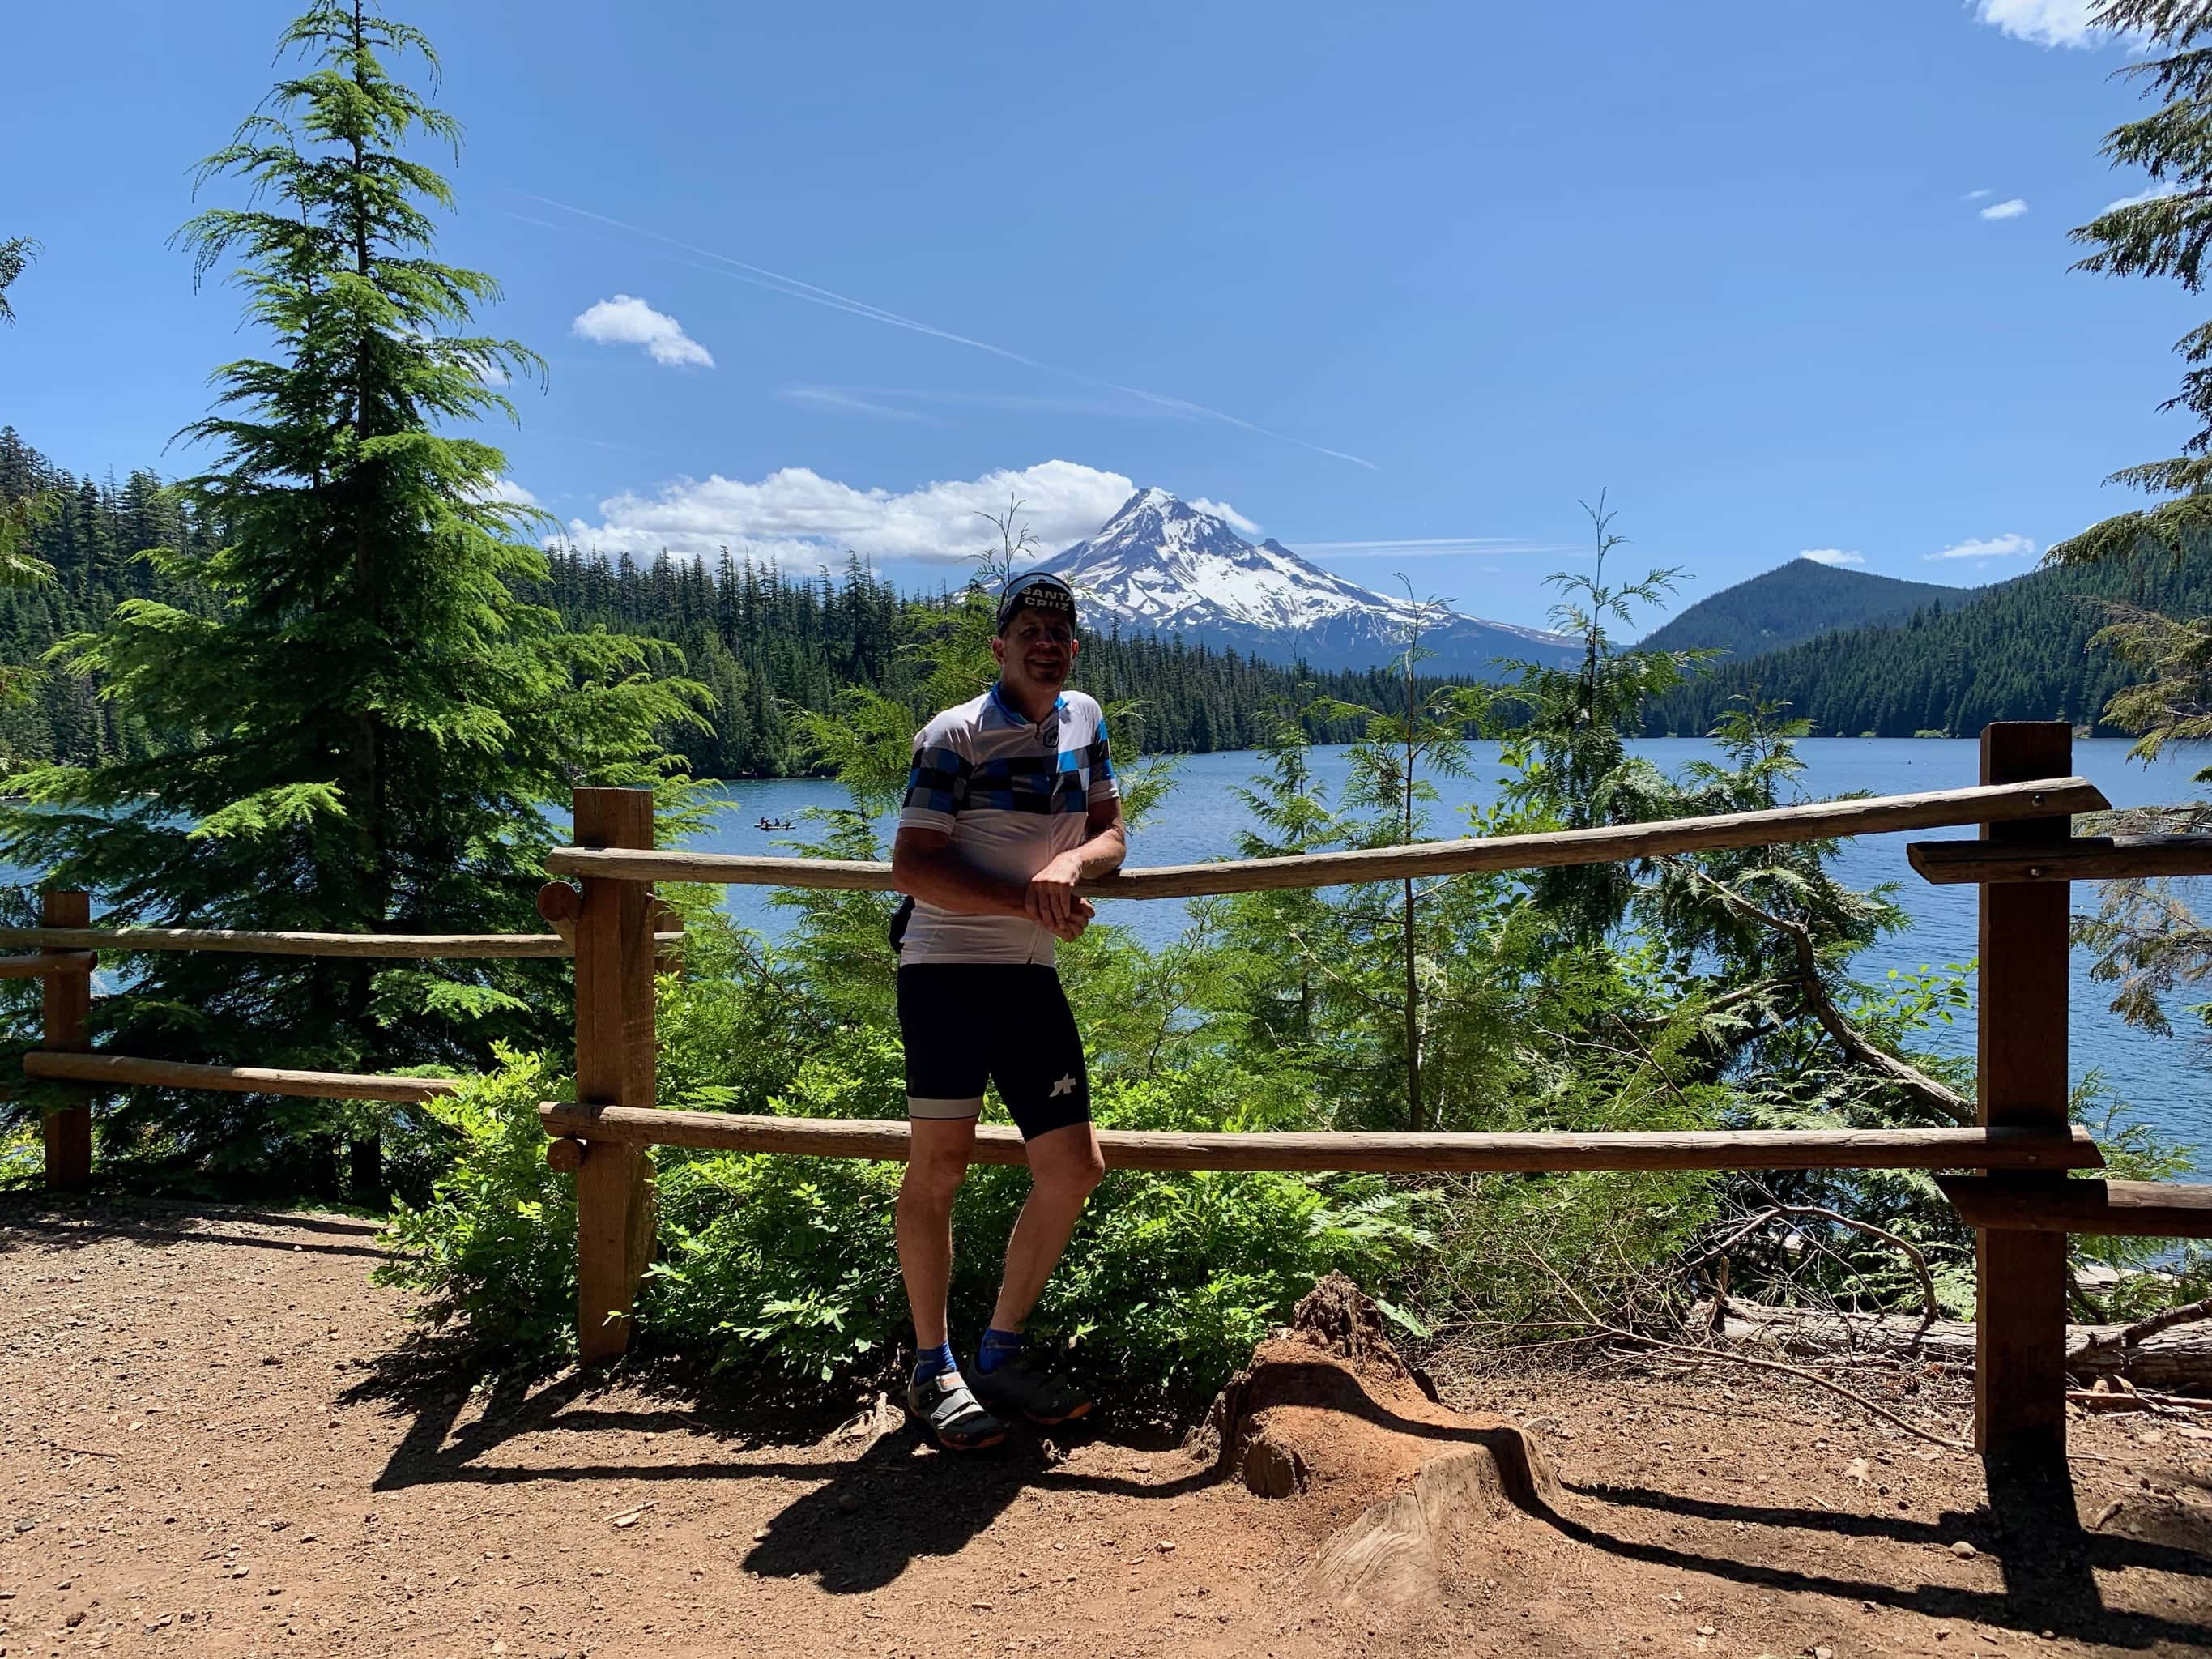 Gravel cyclist with Lost Lake and Mt. Hood in background.